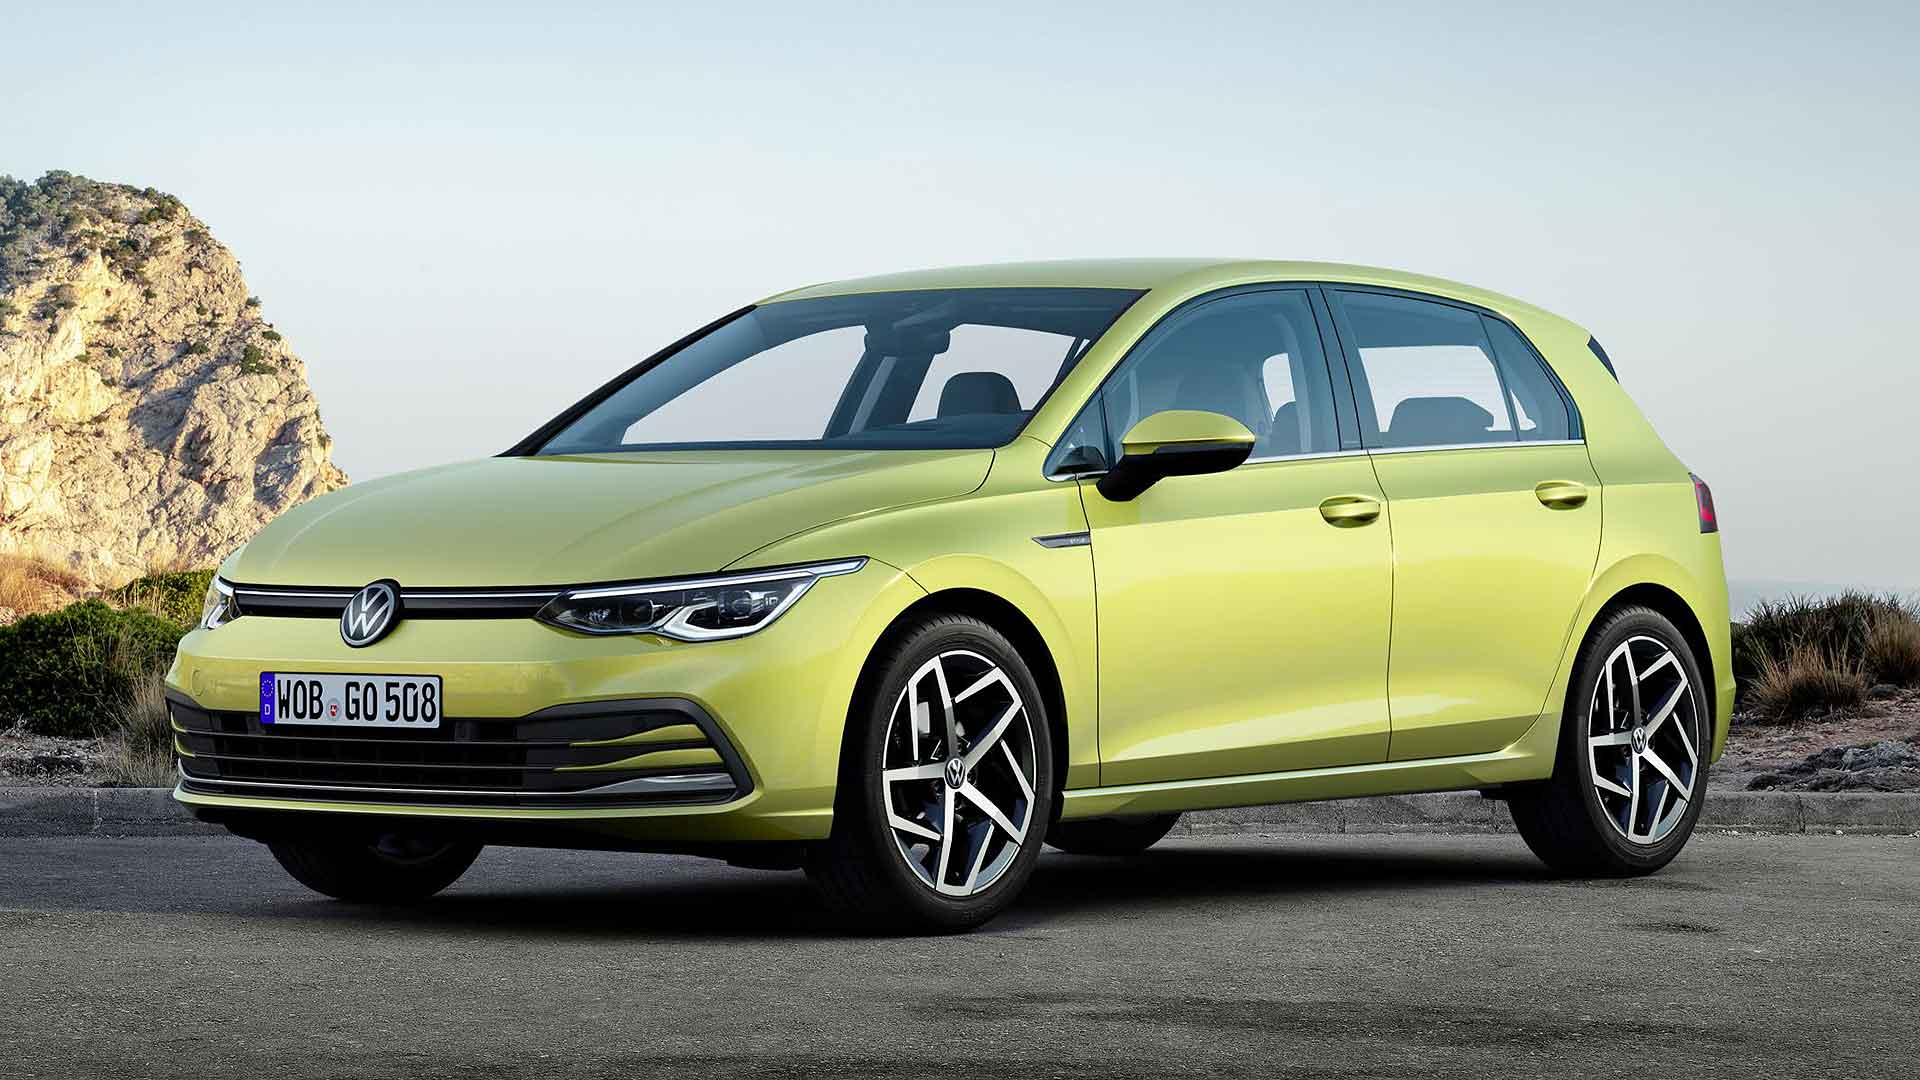 New Volkswagen Golf 8 prices start from £23,875 | Motoring Research